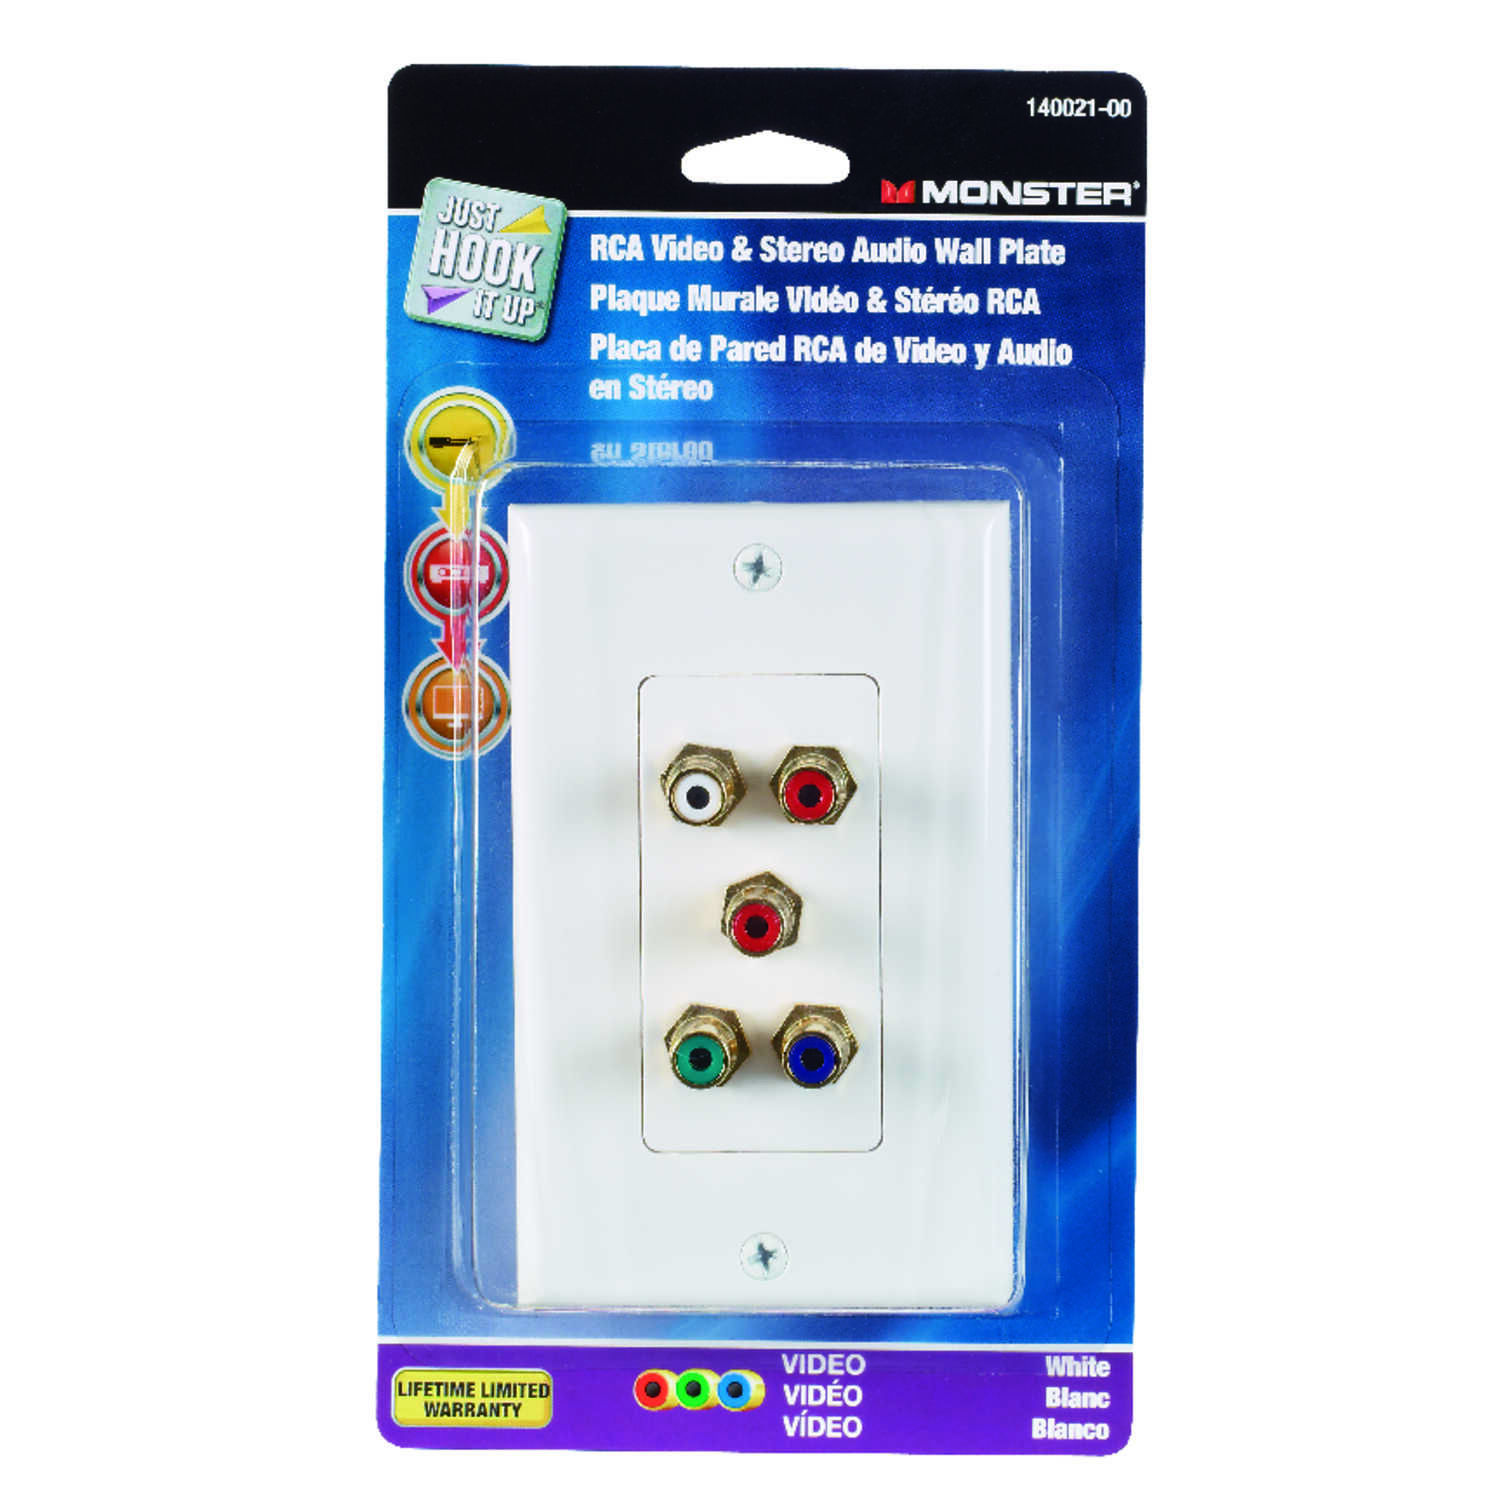 Monster Cable  Just Hook It Up  White  1 gang Plastic  RCA  Wall Plate  1 pk